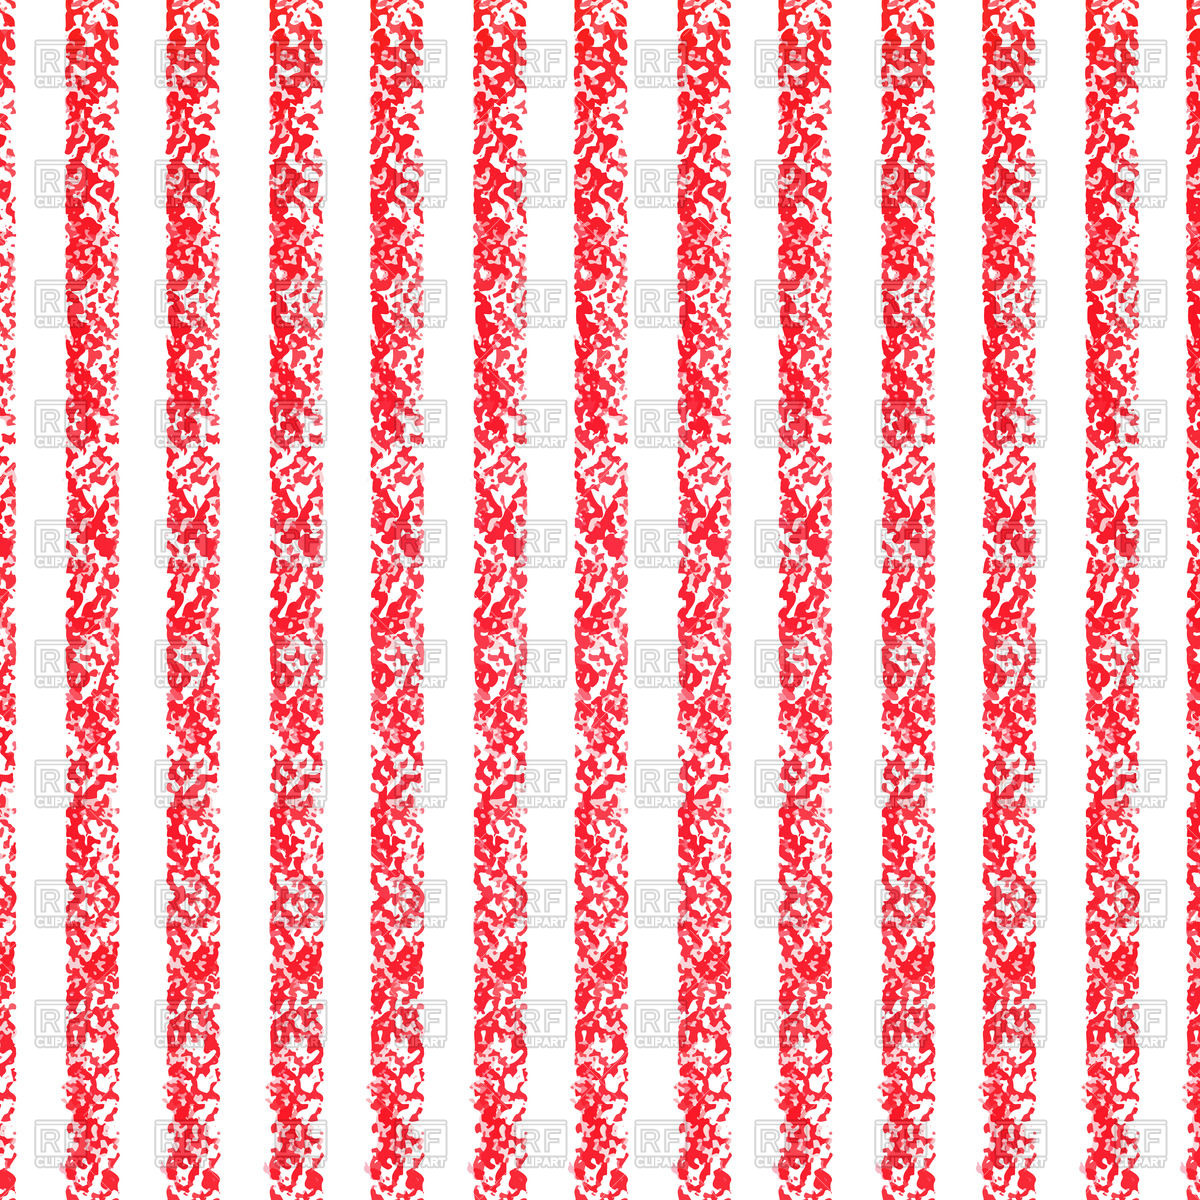 Pastel crayon background with red and white stripes Vector Image.